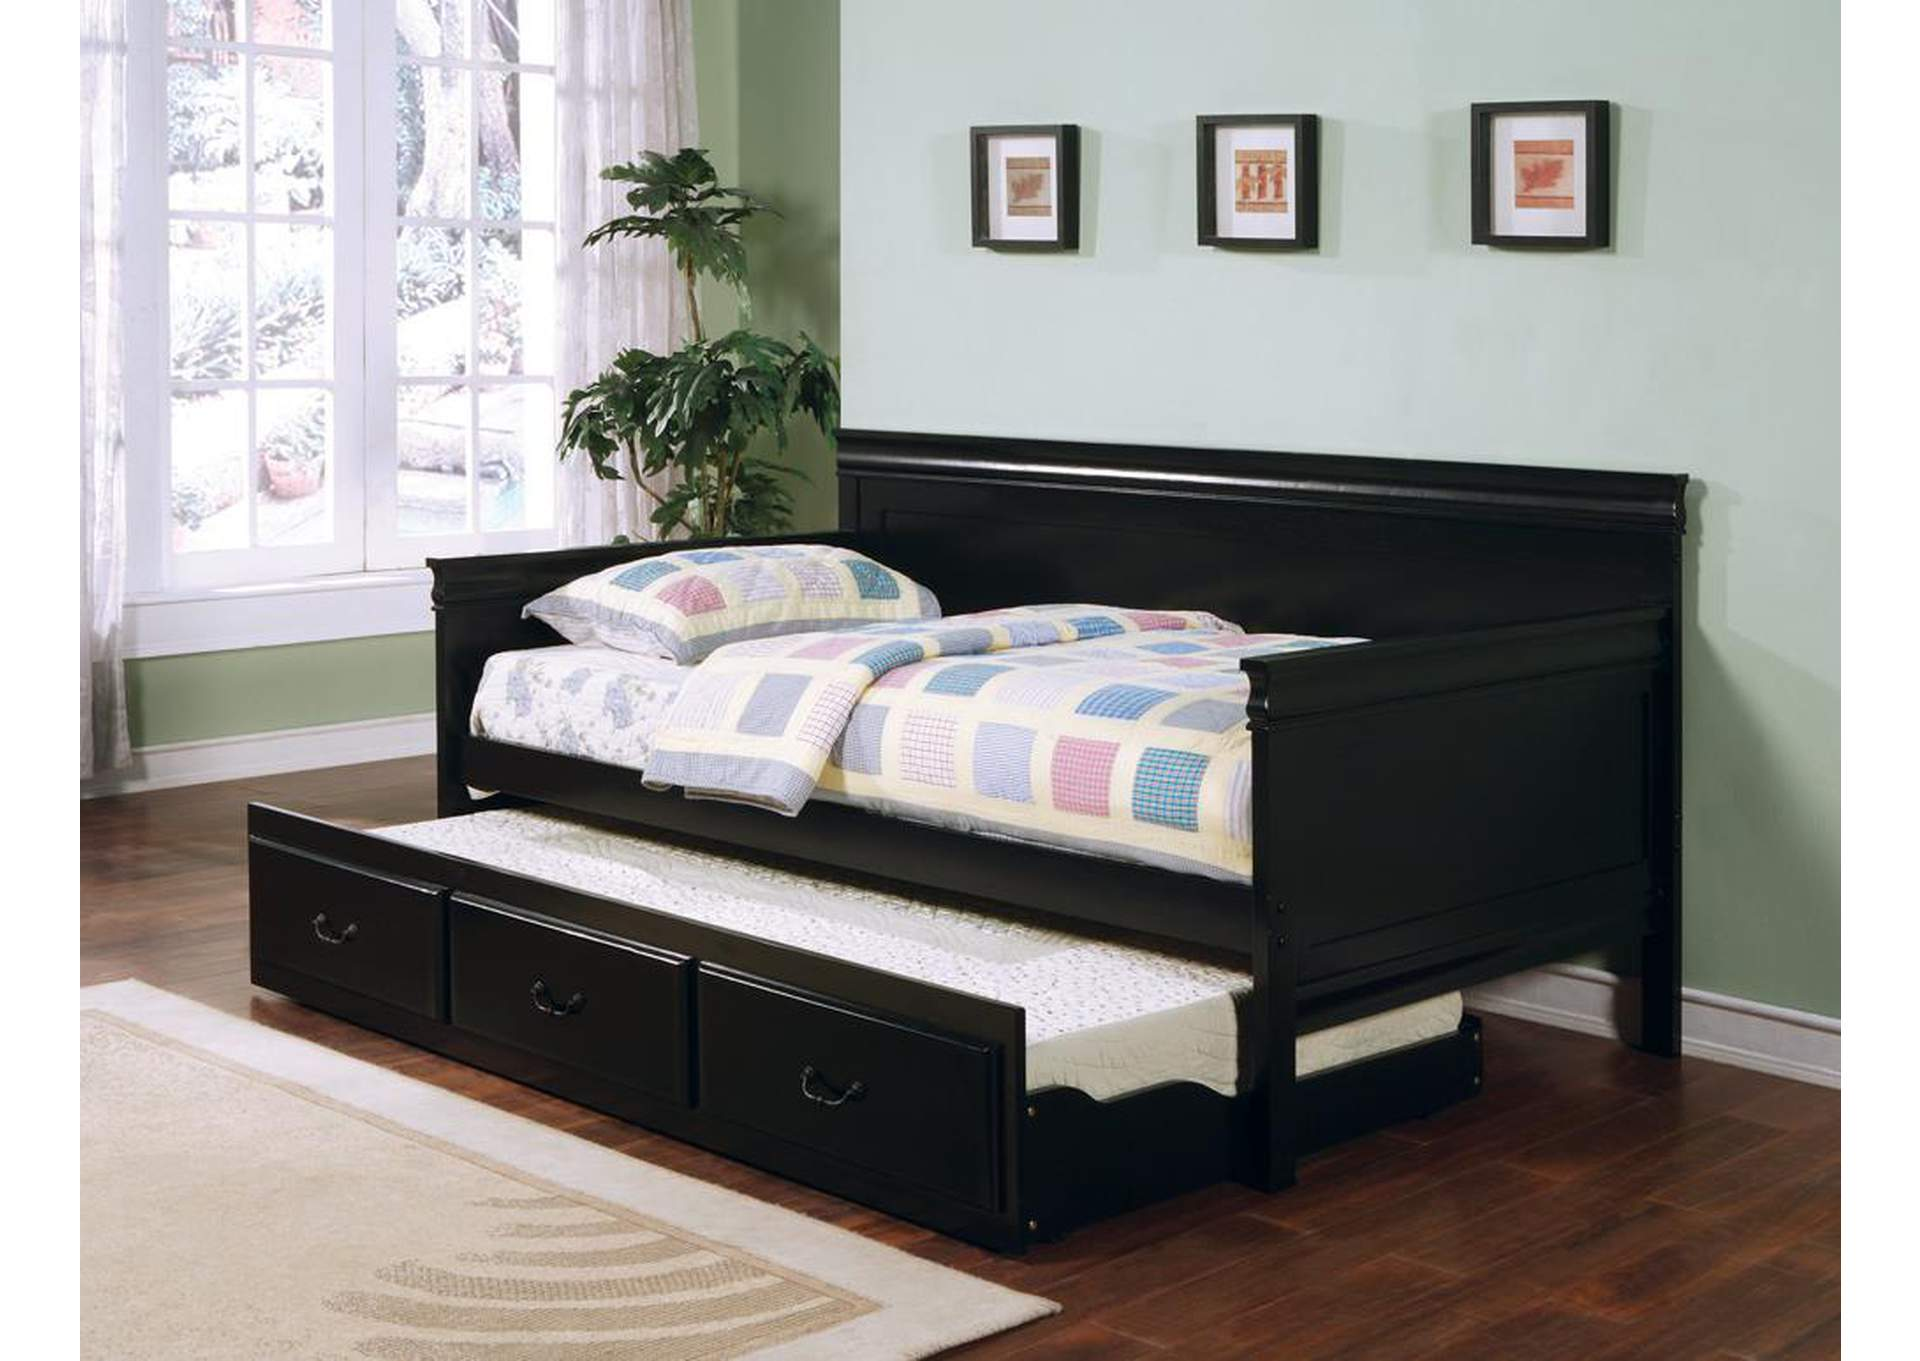 Twin Size Daybed,Coaster Furniture